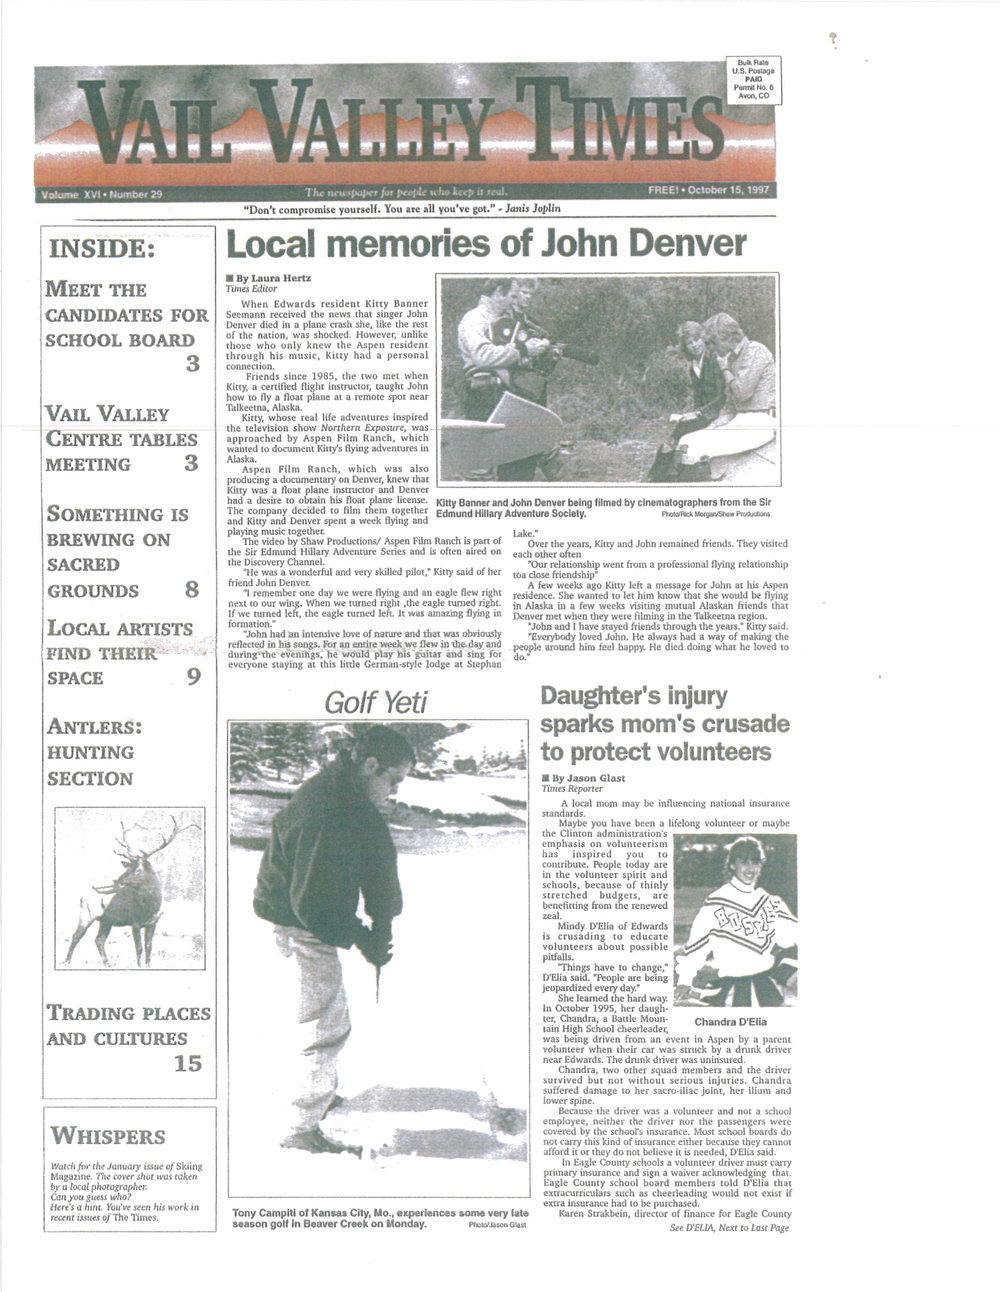 1997 - Vail Valley Times_Page_1.jpg